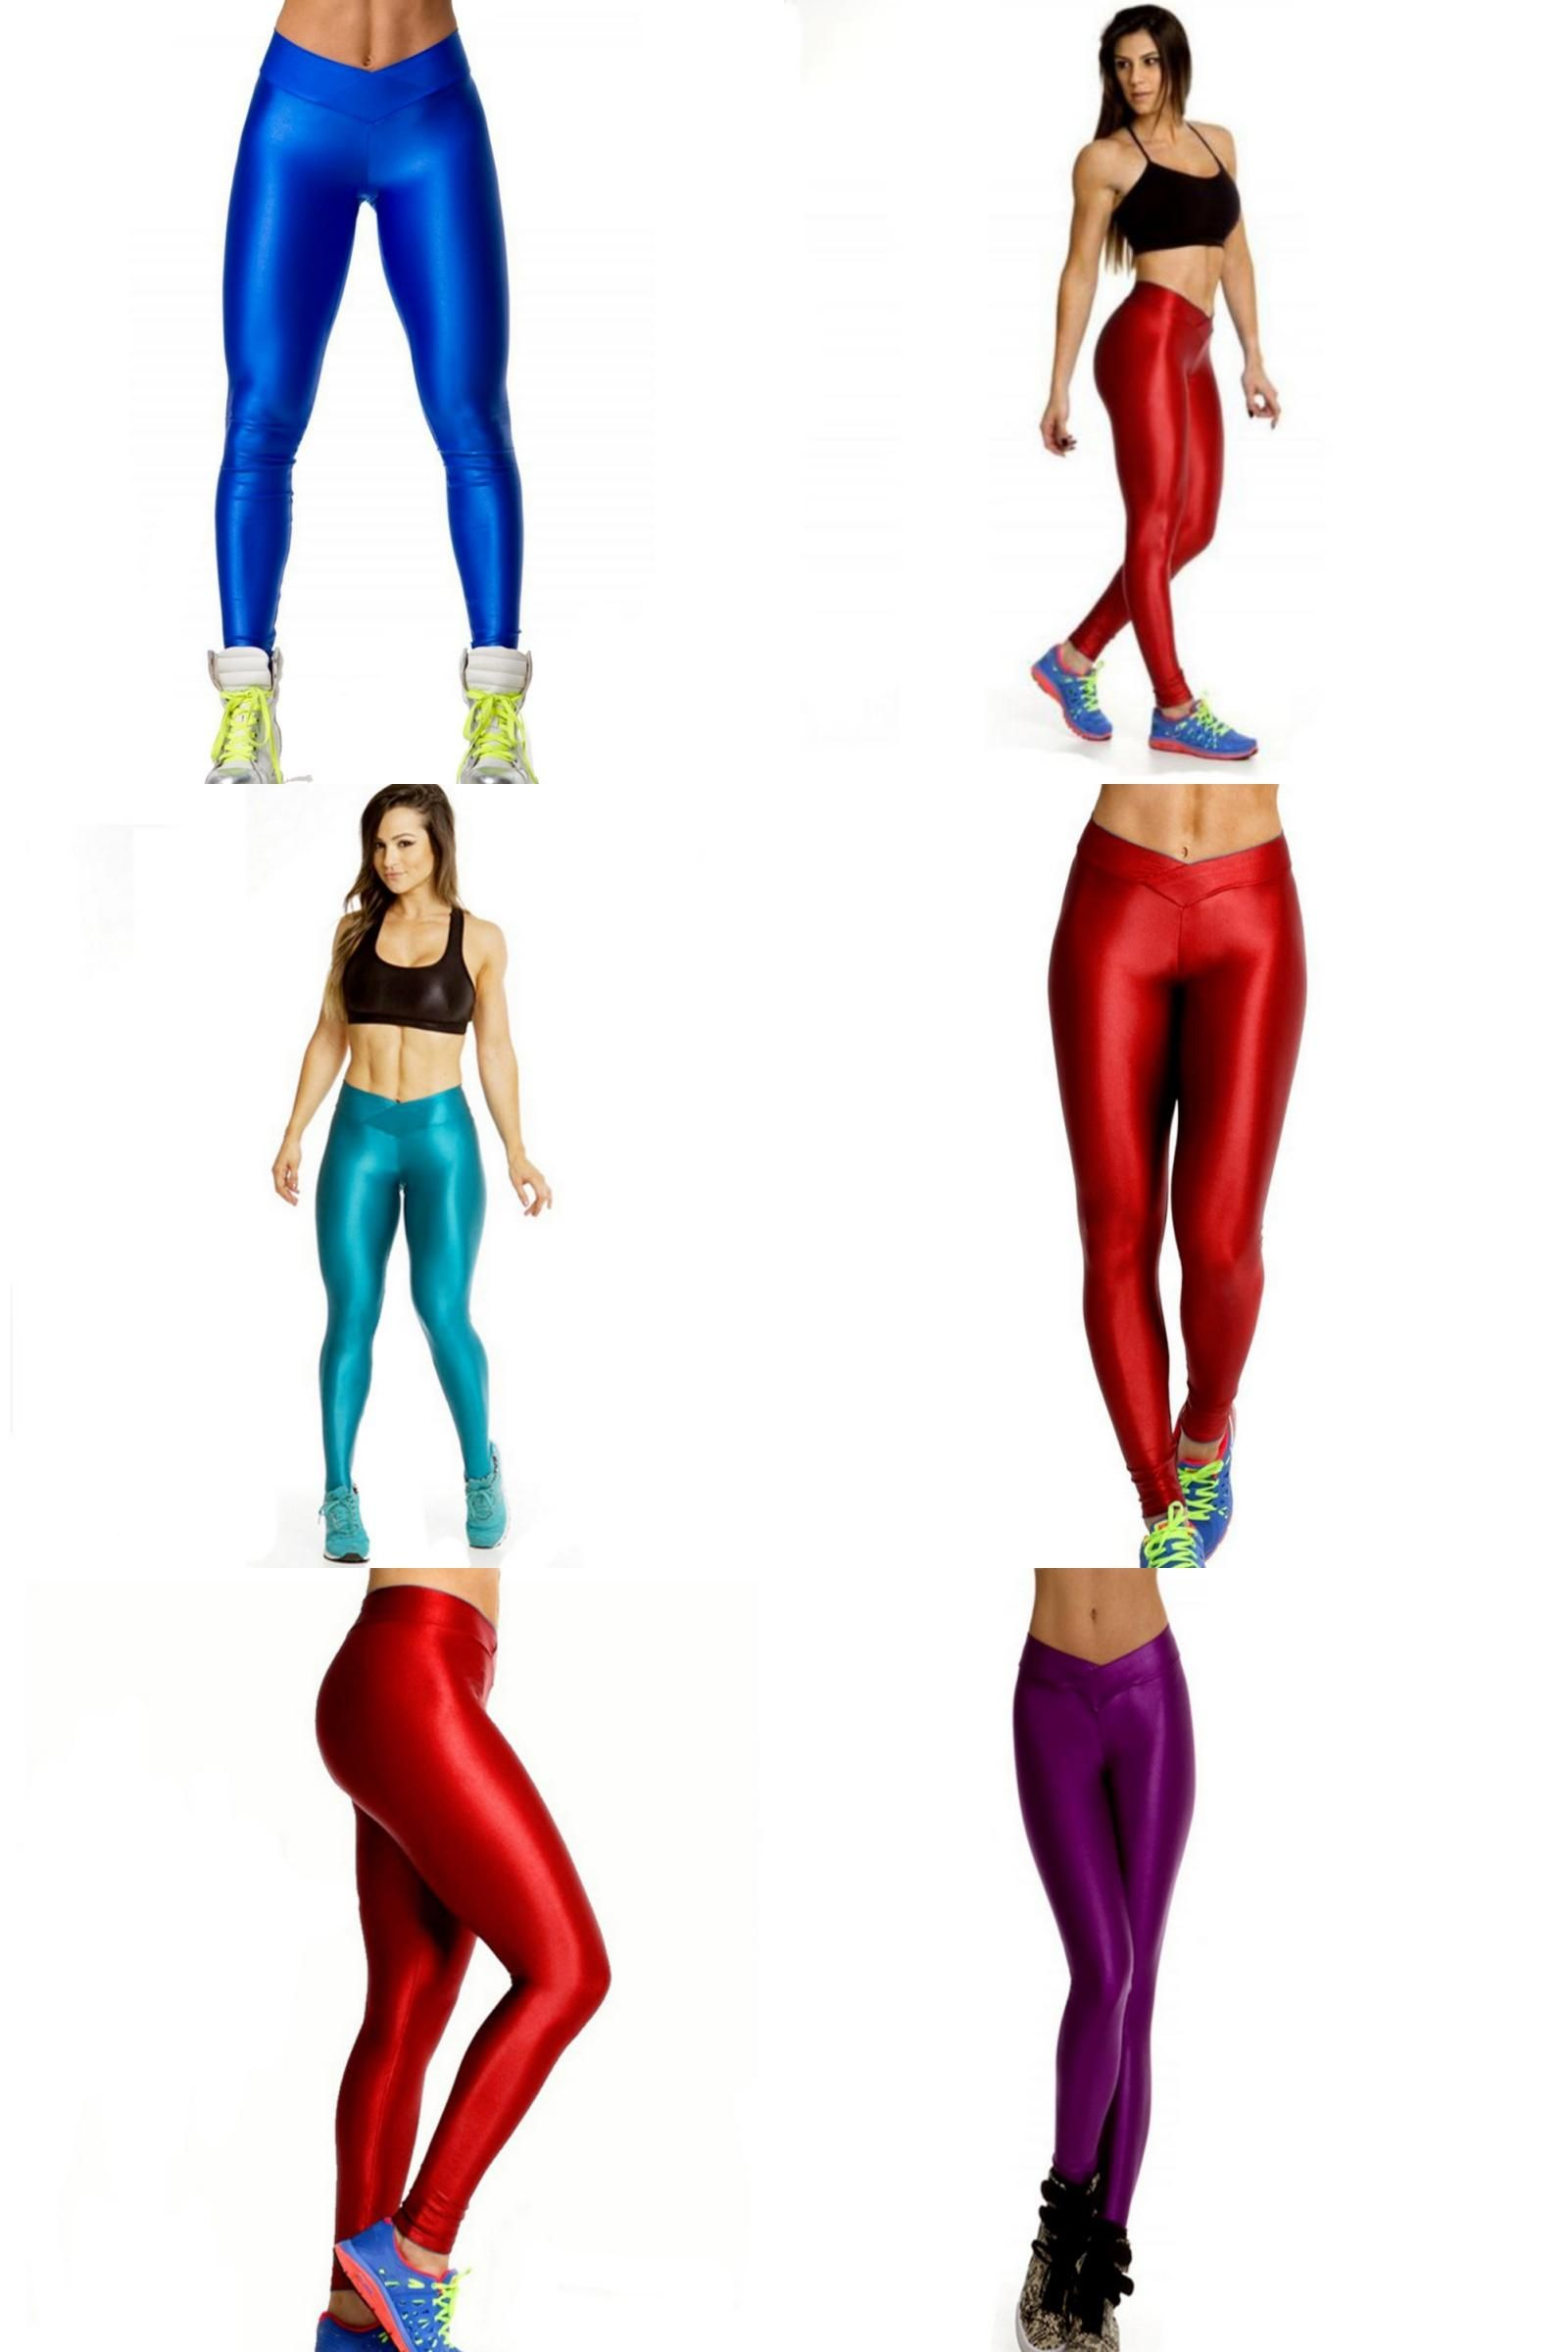 8b07015f56435 [Visit to Buy] Women High Waist Sexy Tight Legging Sports Pants Elastic  Yoga Fitness